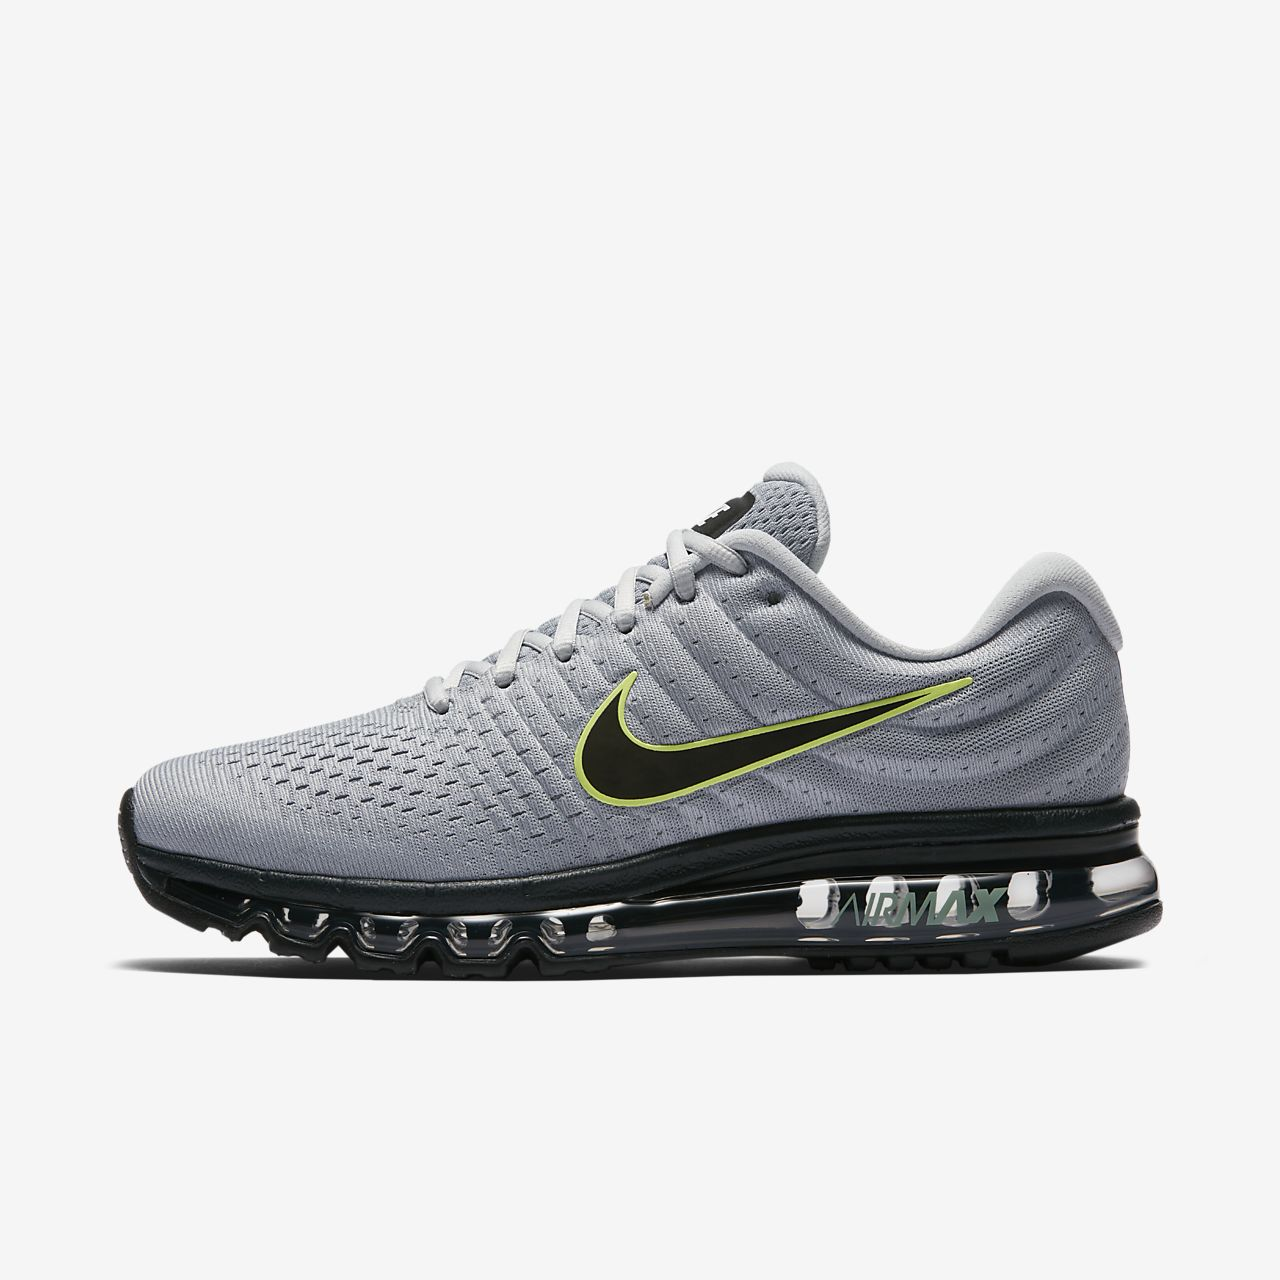 brand new 4d646 12f53 ... Nike Air Max 2017 Men s Shoe